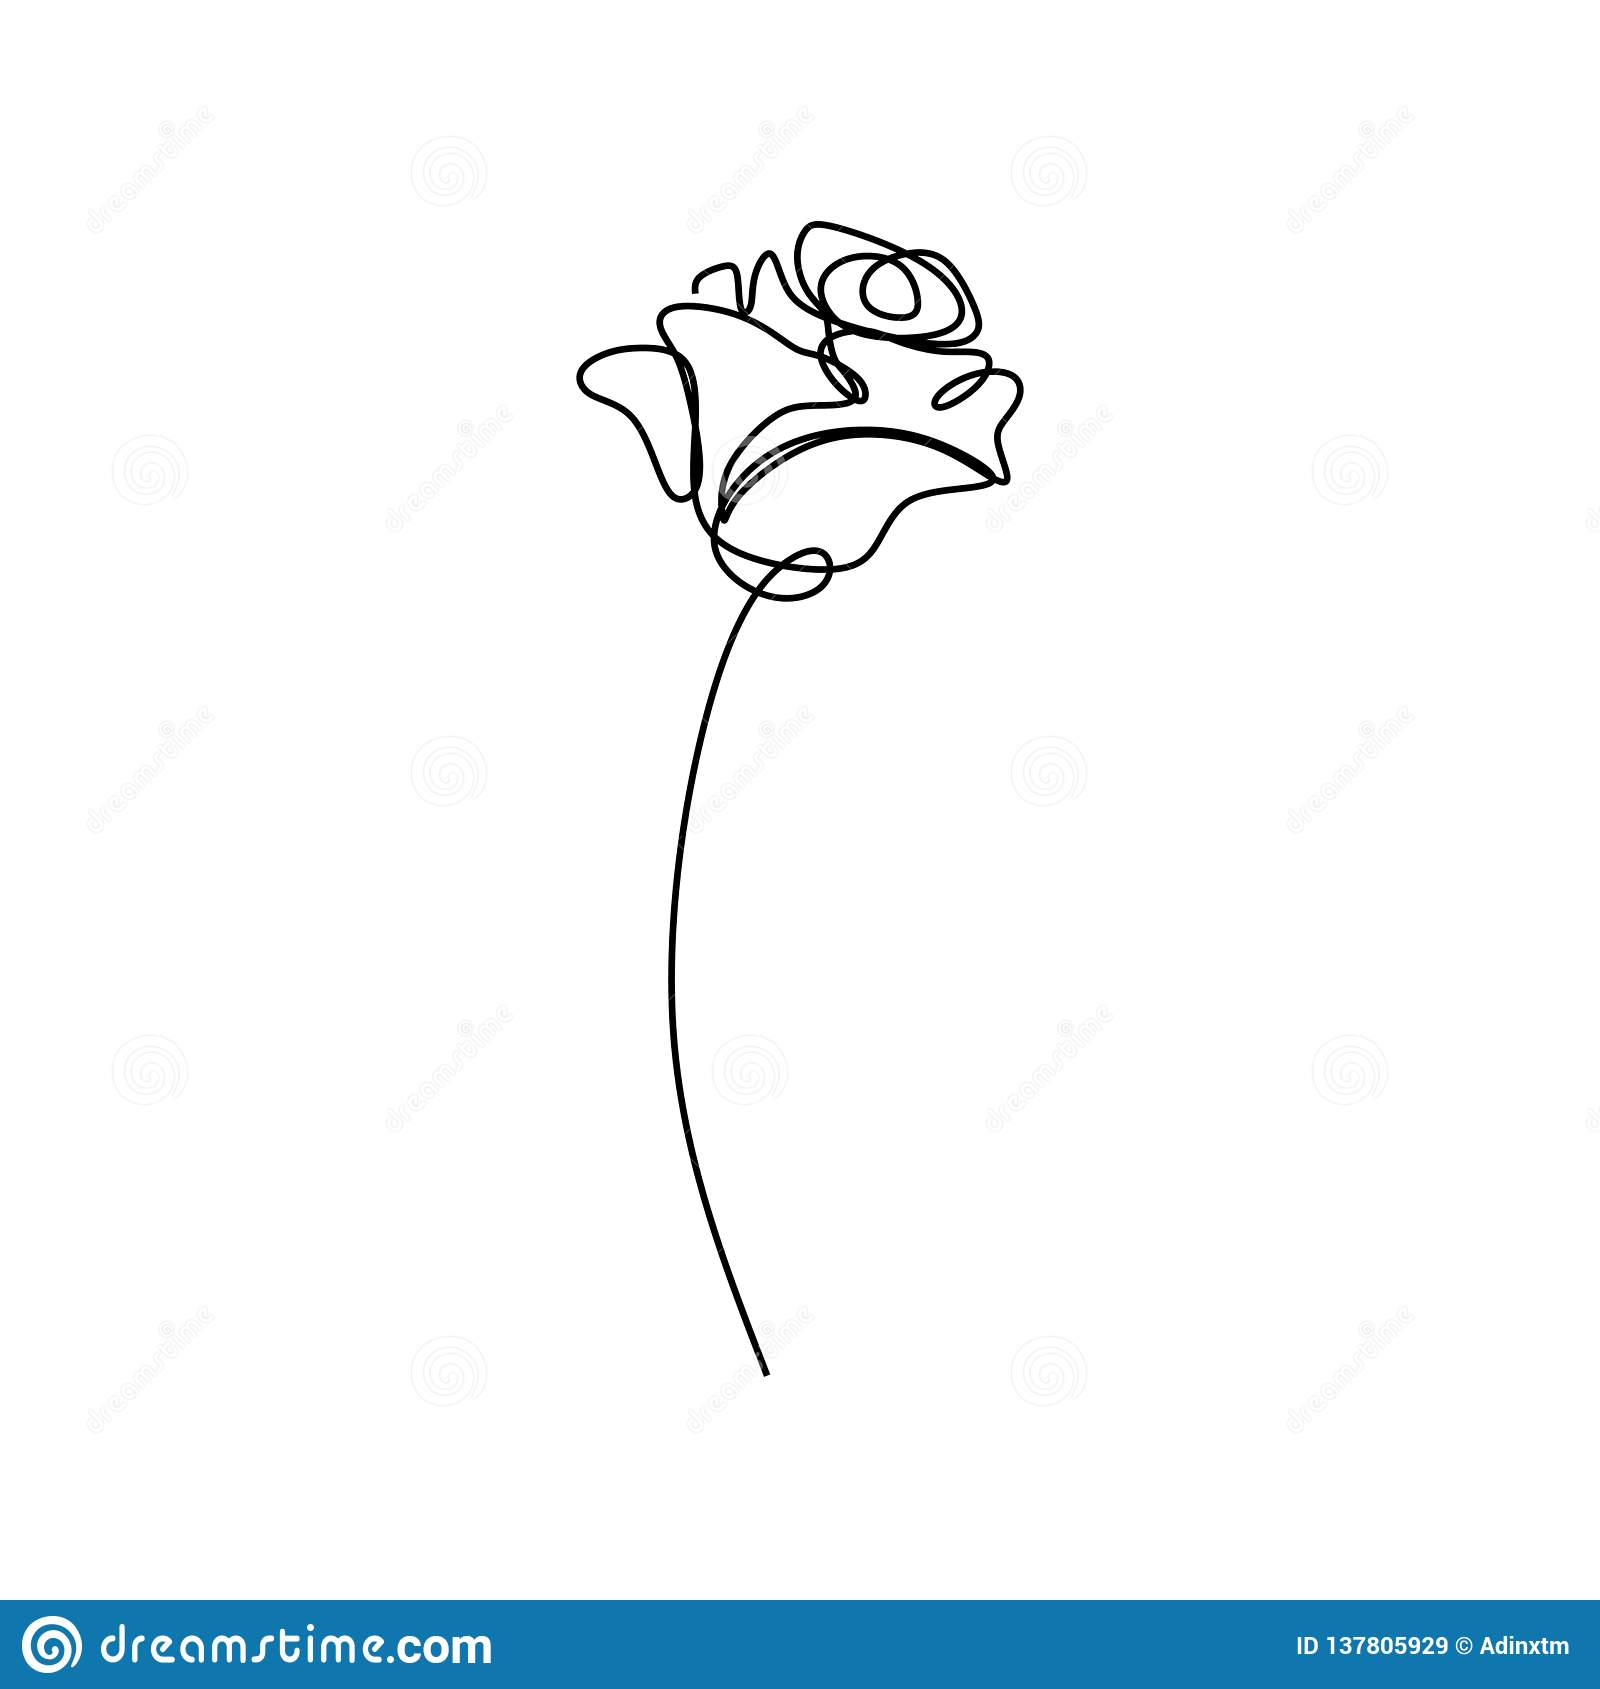 Simple Continuous Line Art Drawing Of Flower Vector Illustration Minimalist Hand Drawn One Single Stripe Design Isolated On White Stock Vector Illustration Of Linear Symbol 137805929